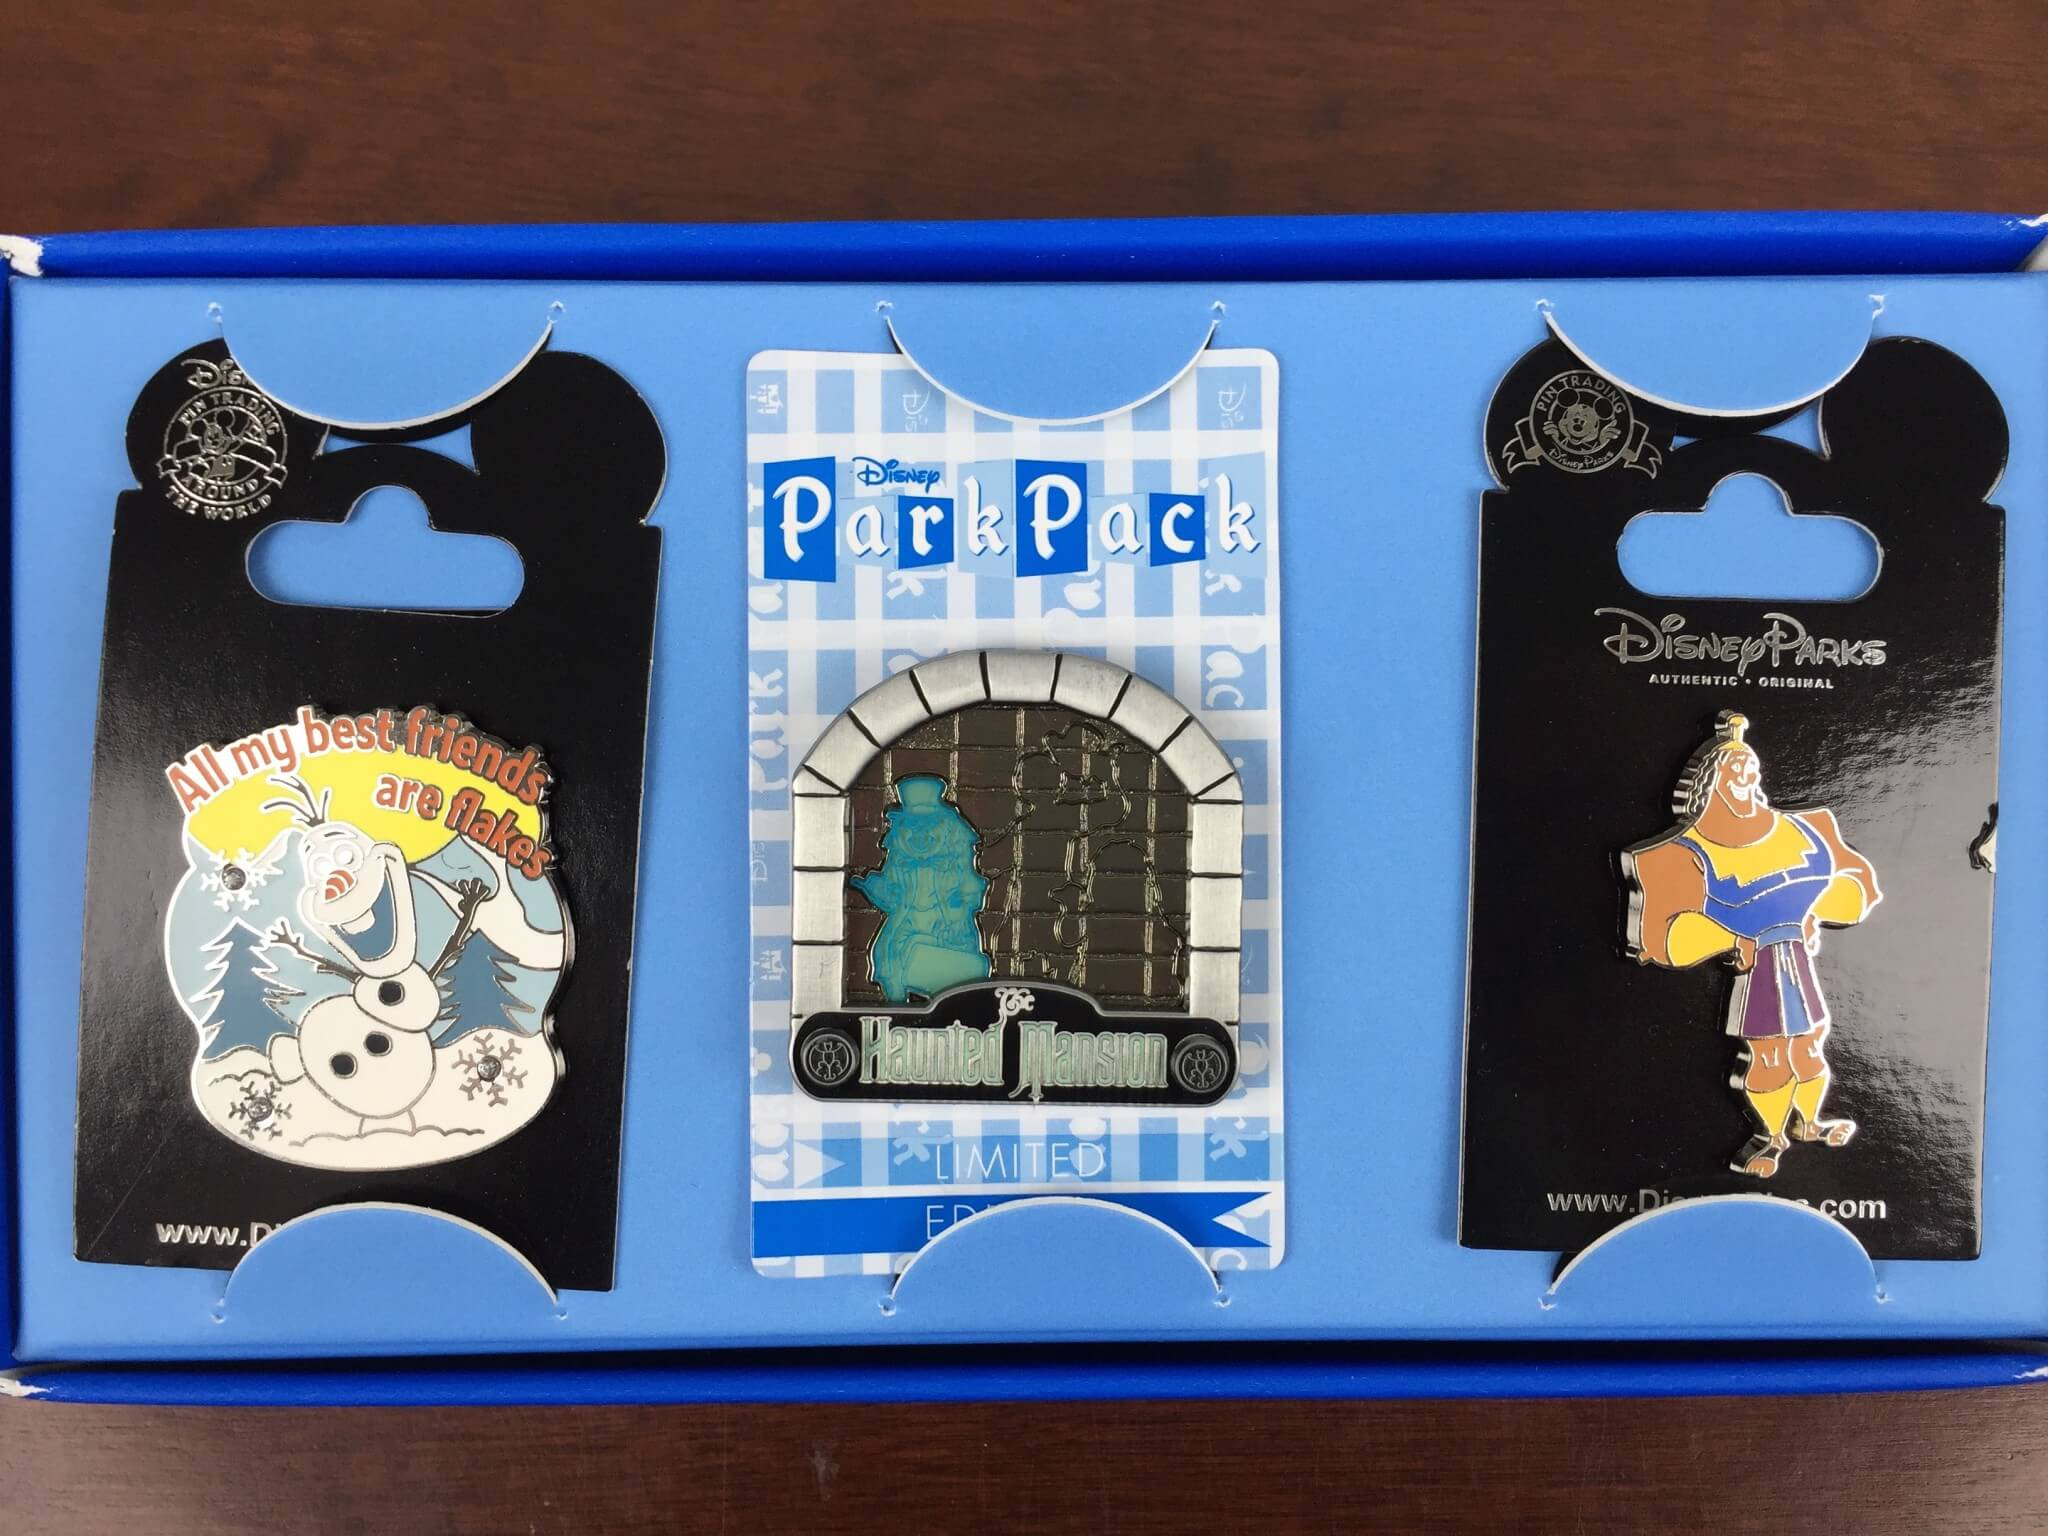 Disney Park Pack: Pin Trading Edition October 2015 Subscription Box Review